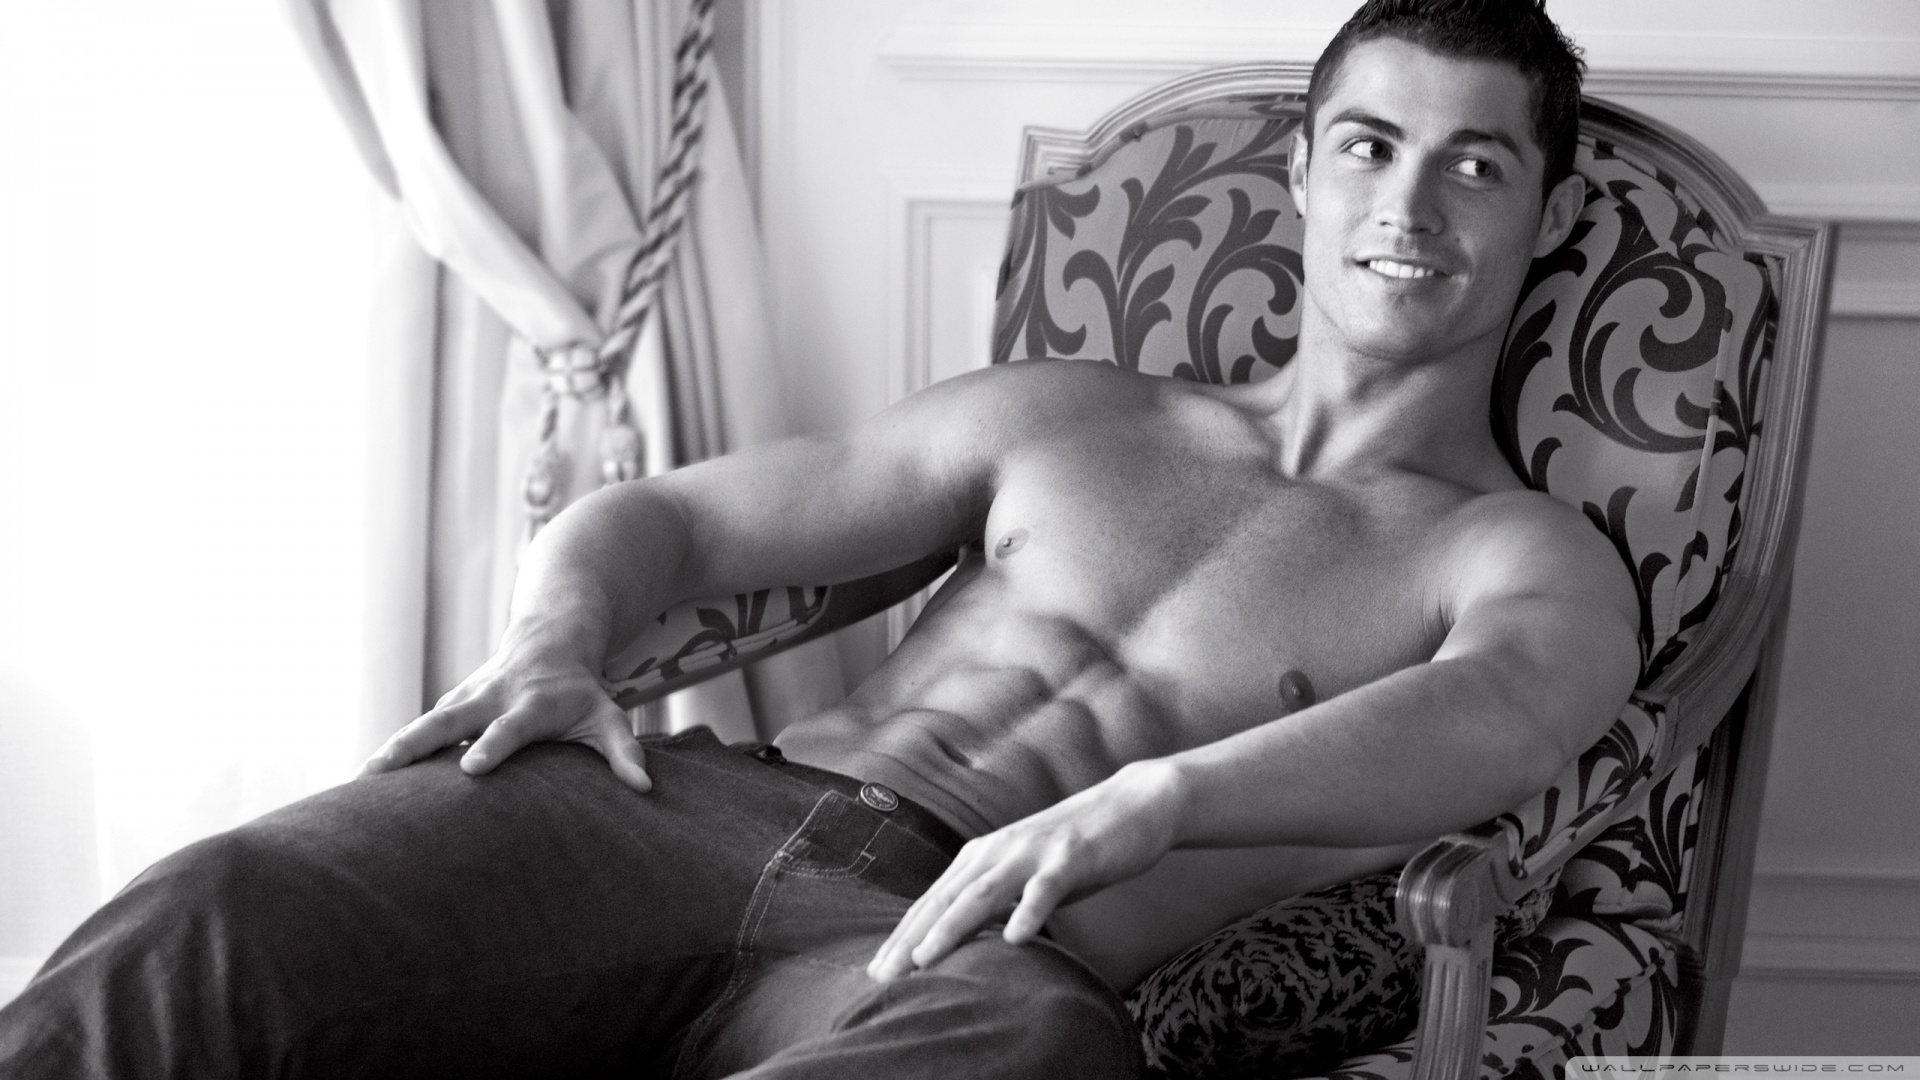 Top 10 Best Male Abs In Hollywood - Cristiano Ronaldo